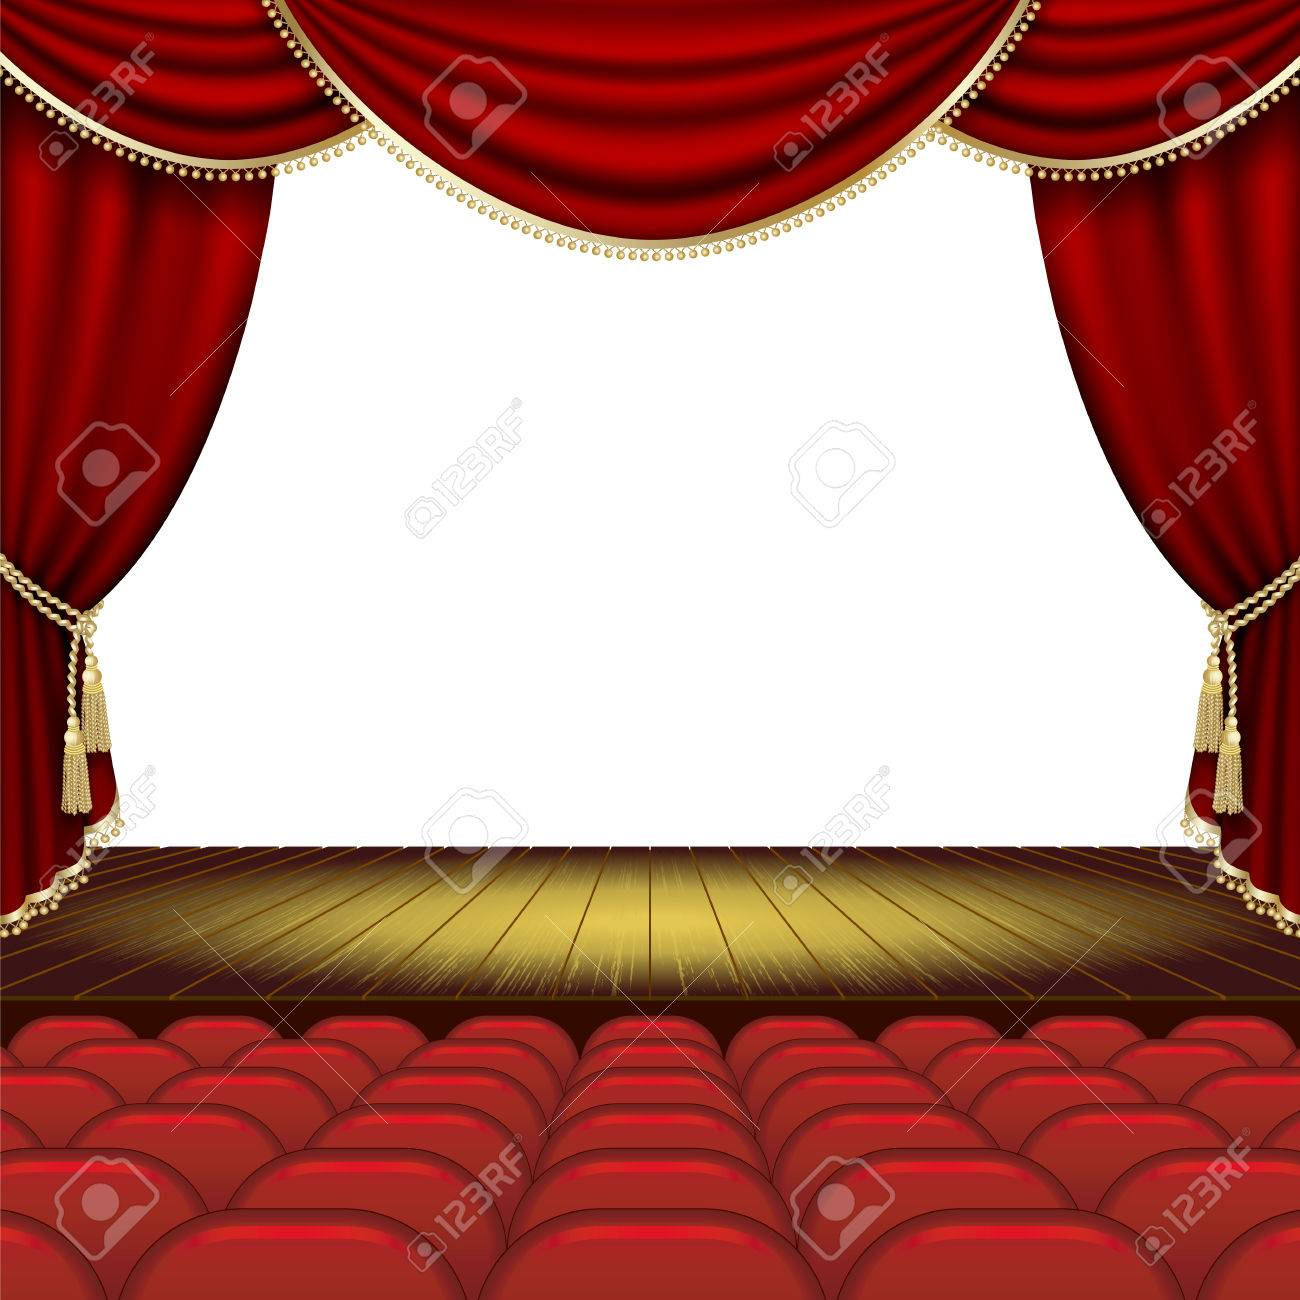 Theater stage with red curtain. Clipping Mask. Mesh. - 36021149